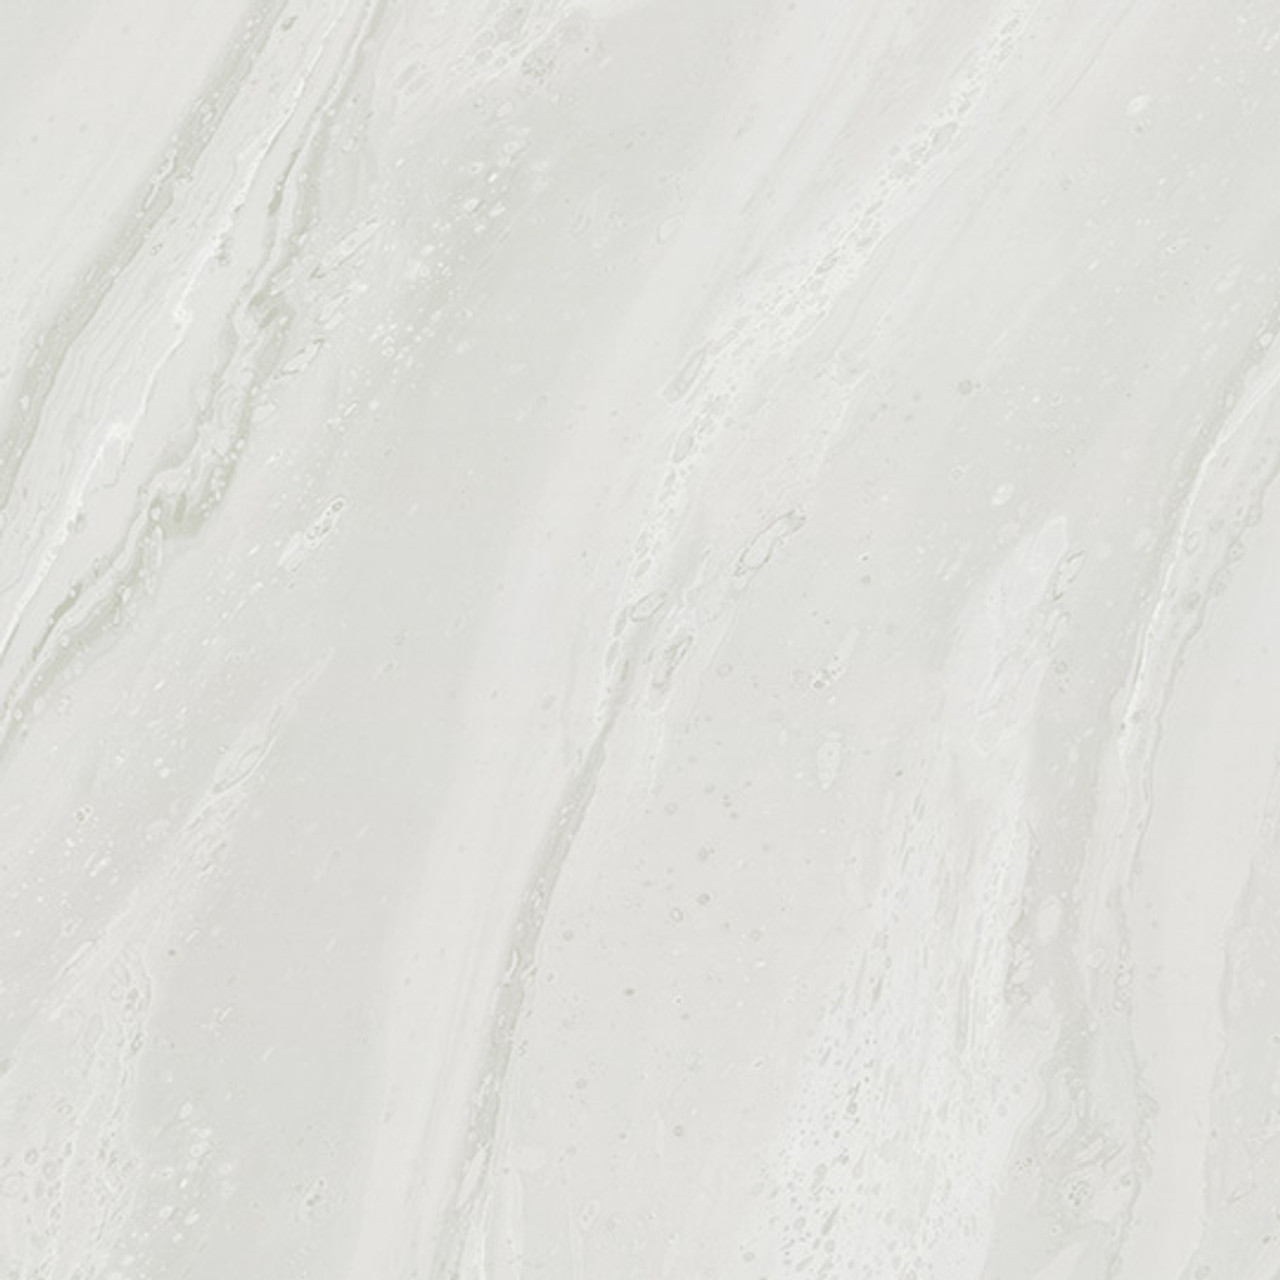 Formica White Painted Marble 5014